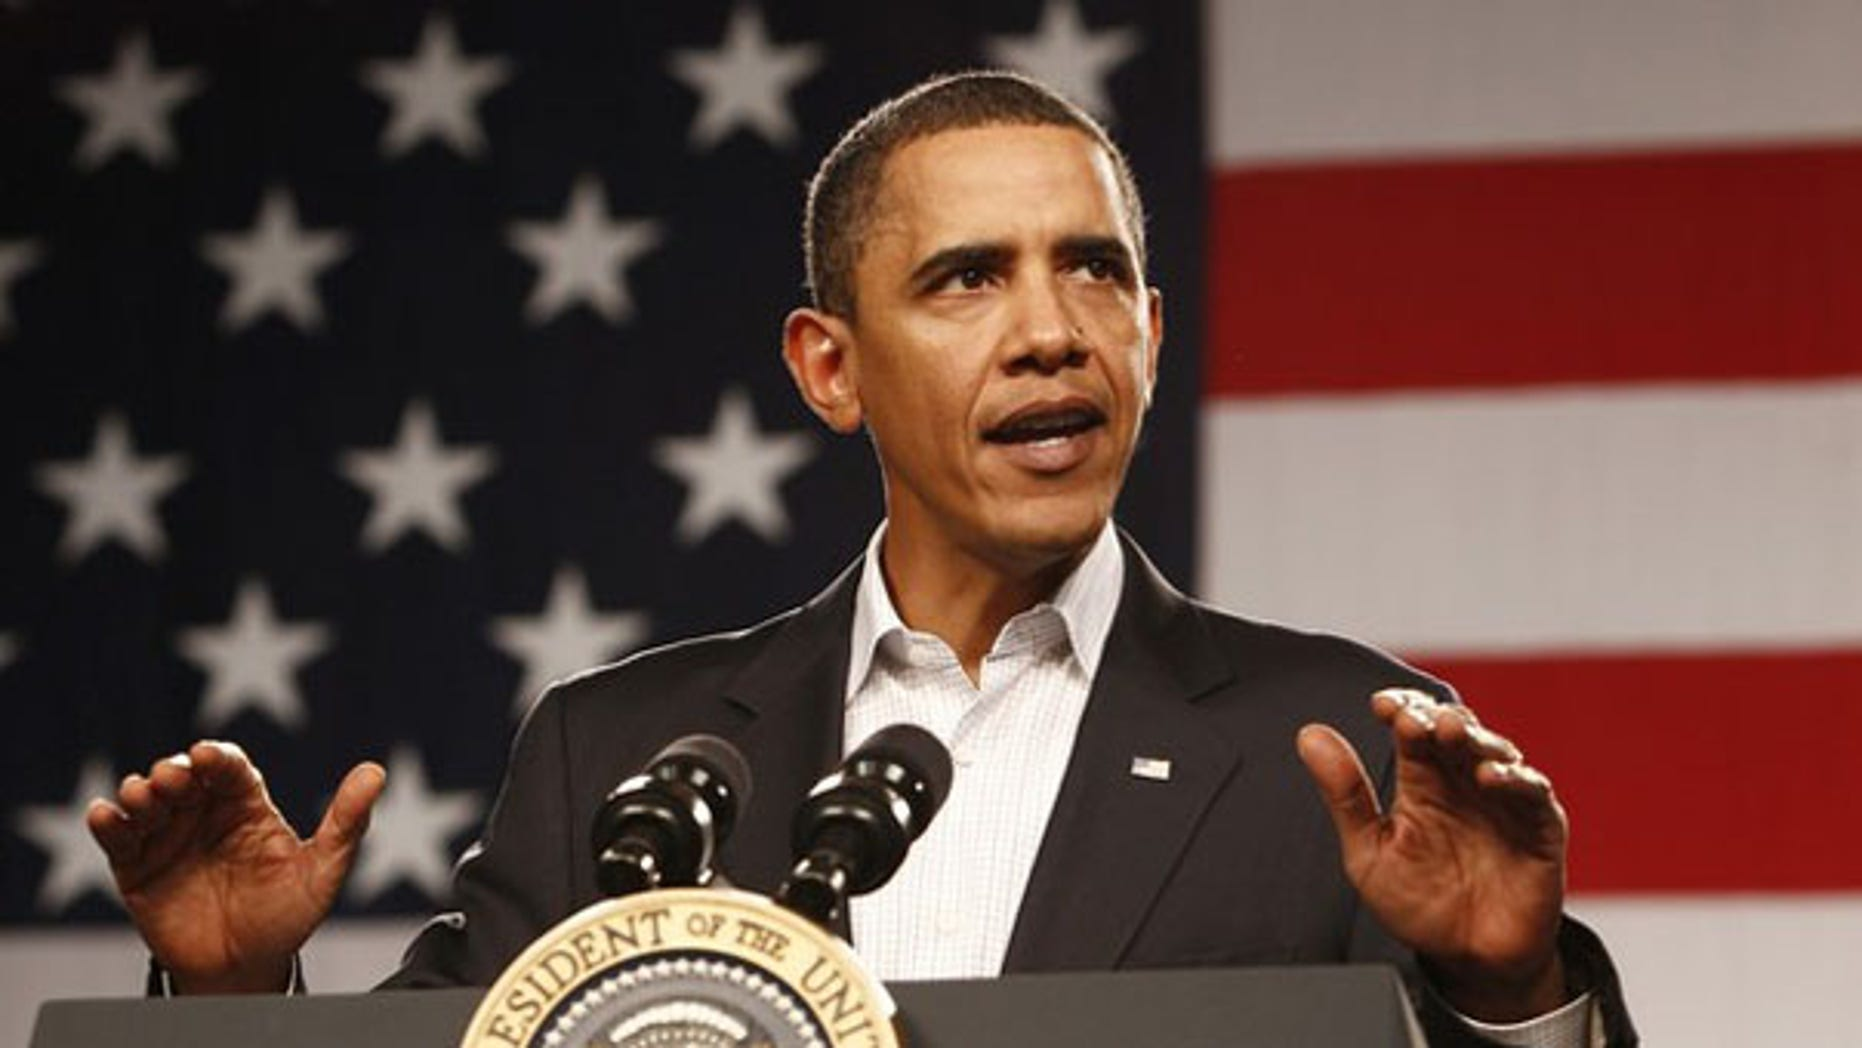 President Obama speaks during a visit to Lorain County Community College in Elyria, Ohio, Jan. 22. (Reuters Photo)